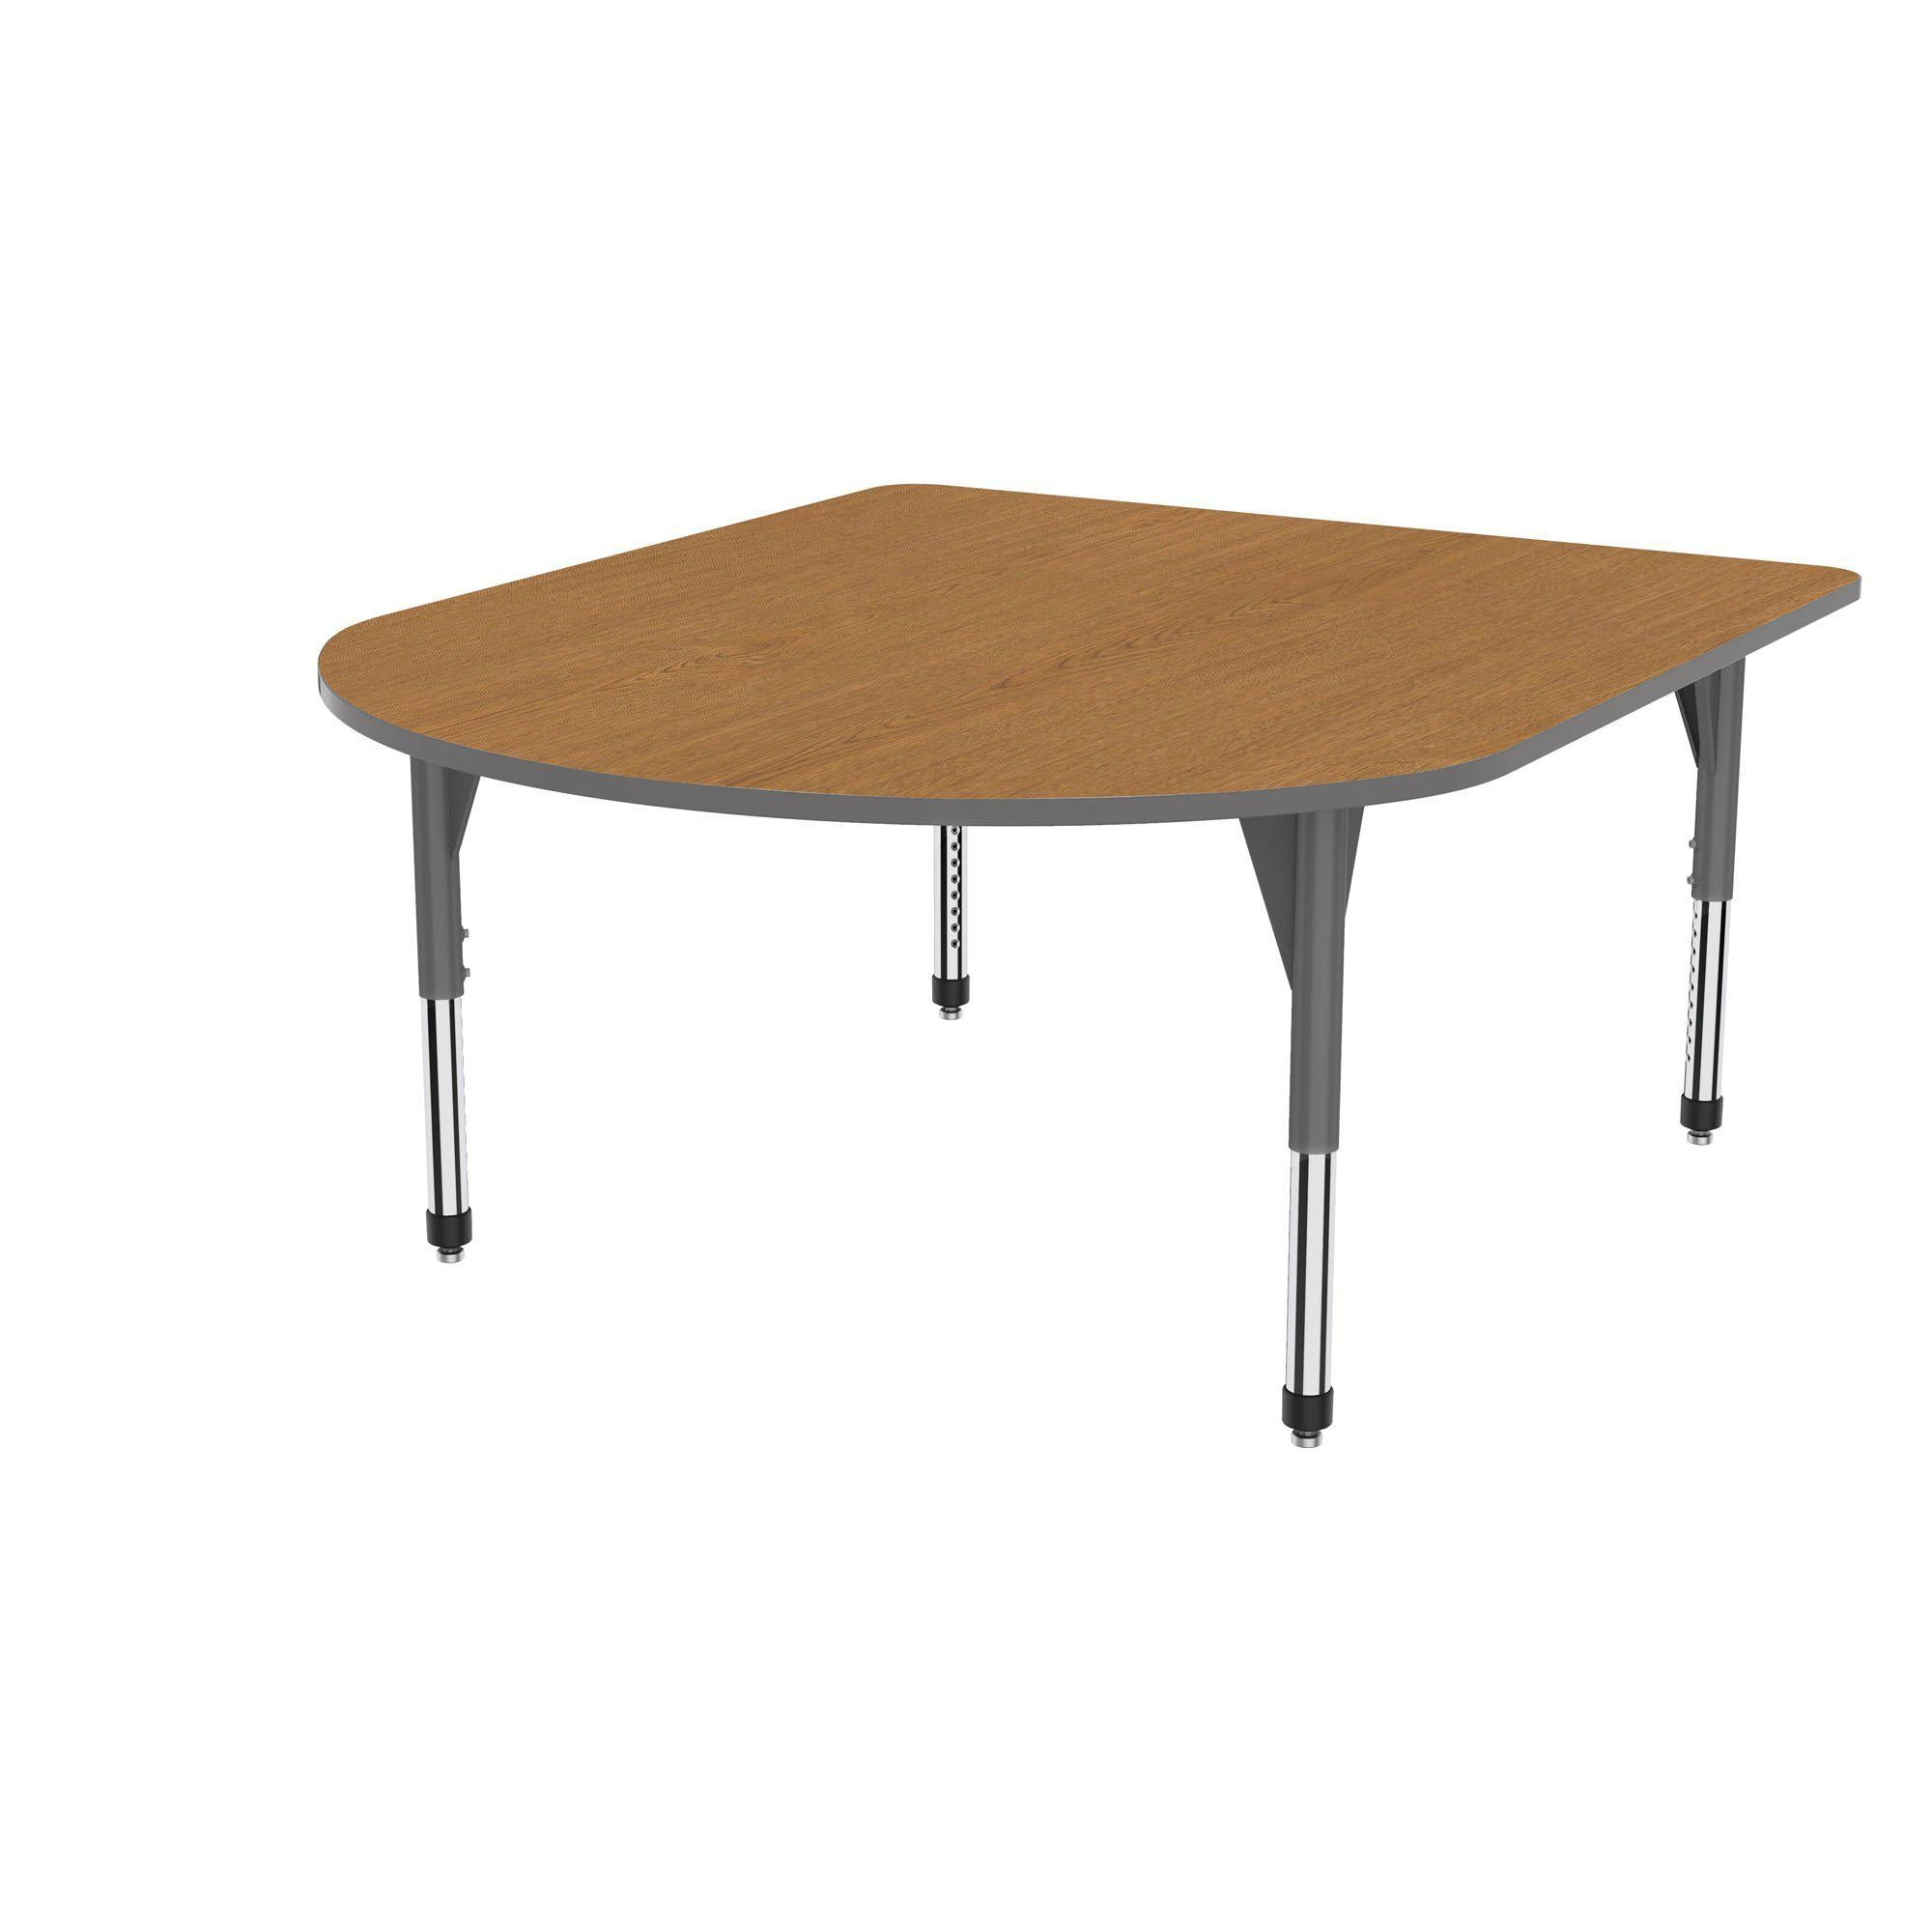 "Premier Series Multimedia Tables, 60"" x 72""-Tables-Sitting (21"" - 31"")-Solar Oak/Gray-Grey"